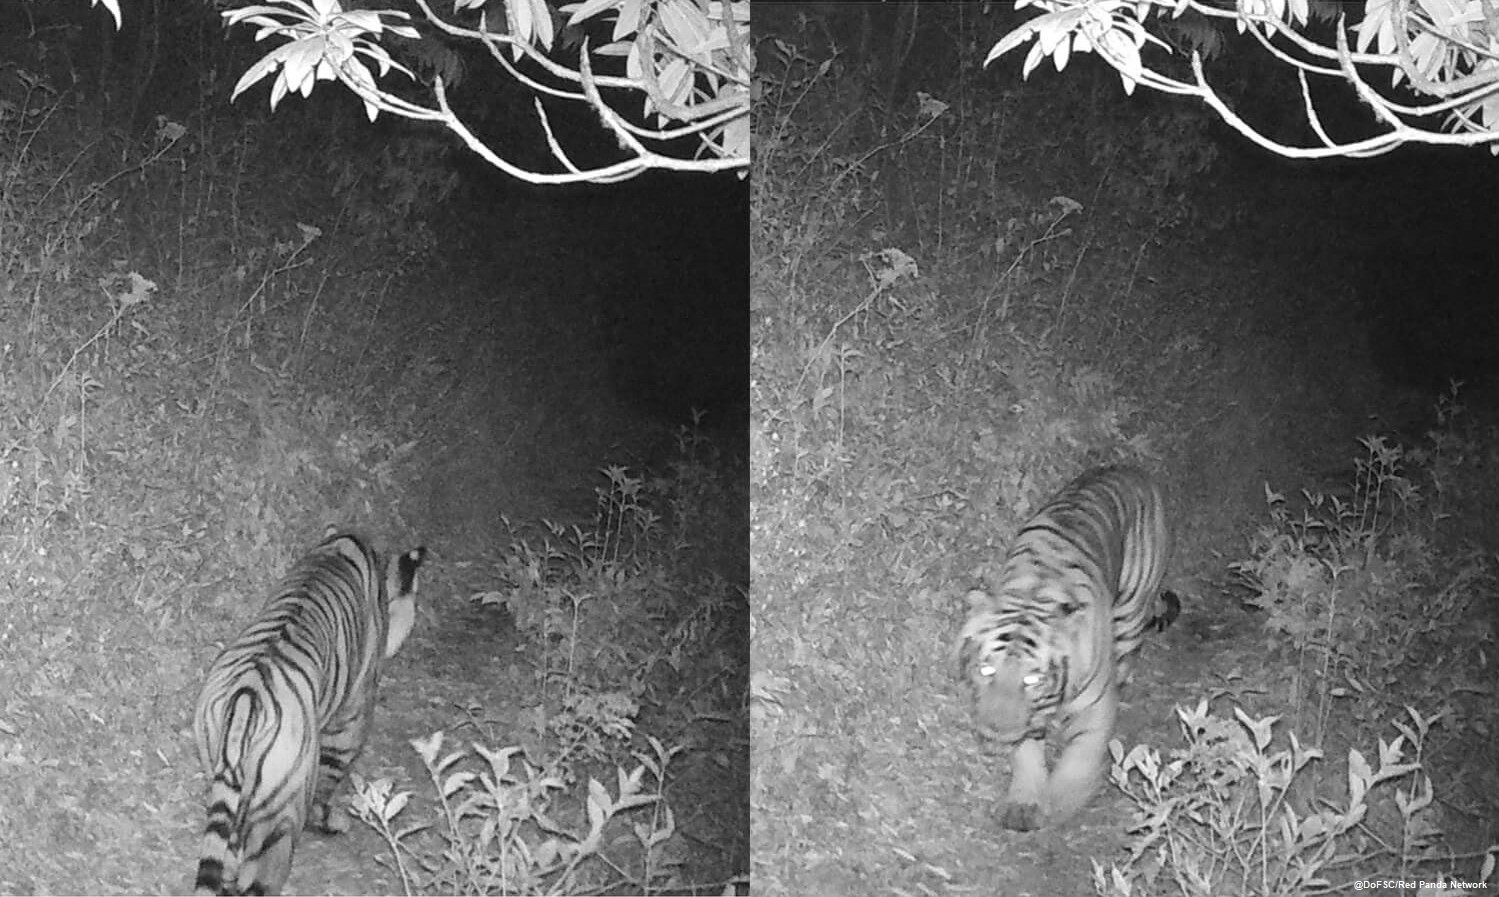 Tiger spotted on camera trap at 3165m (© DoFSC / Red Panda Network)